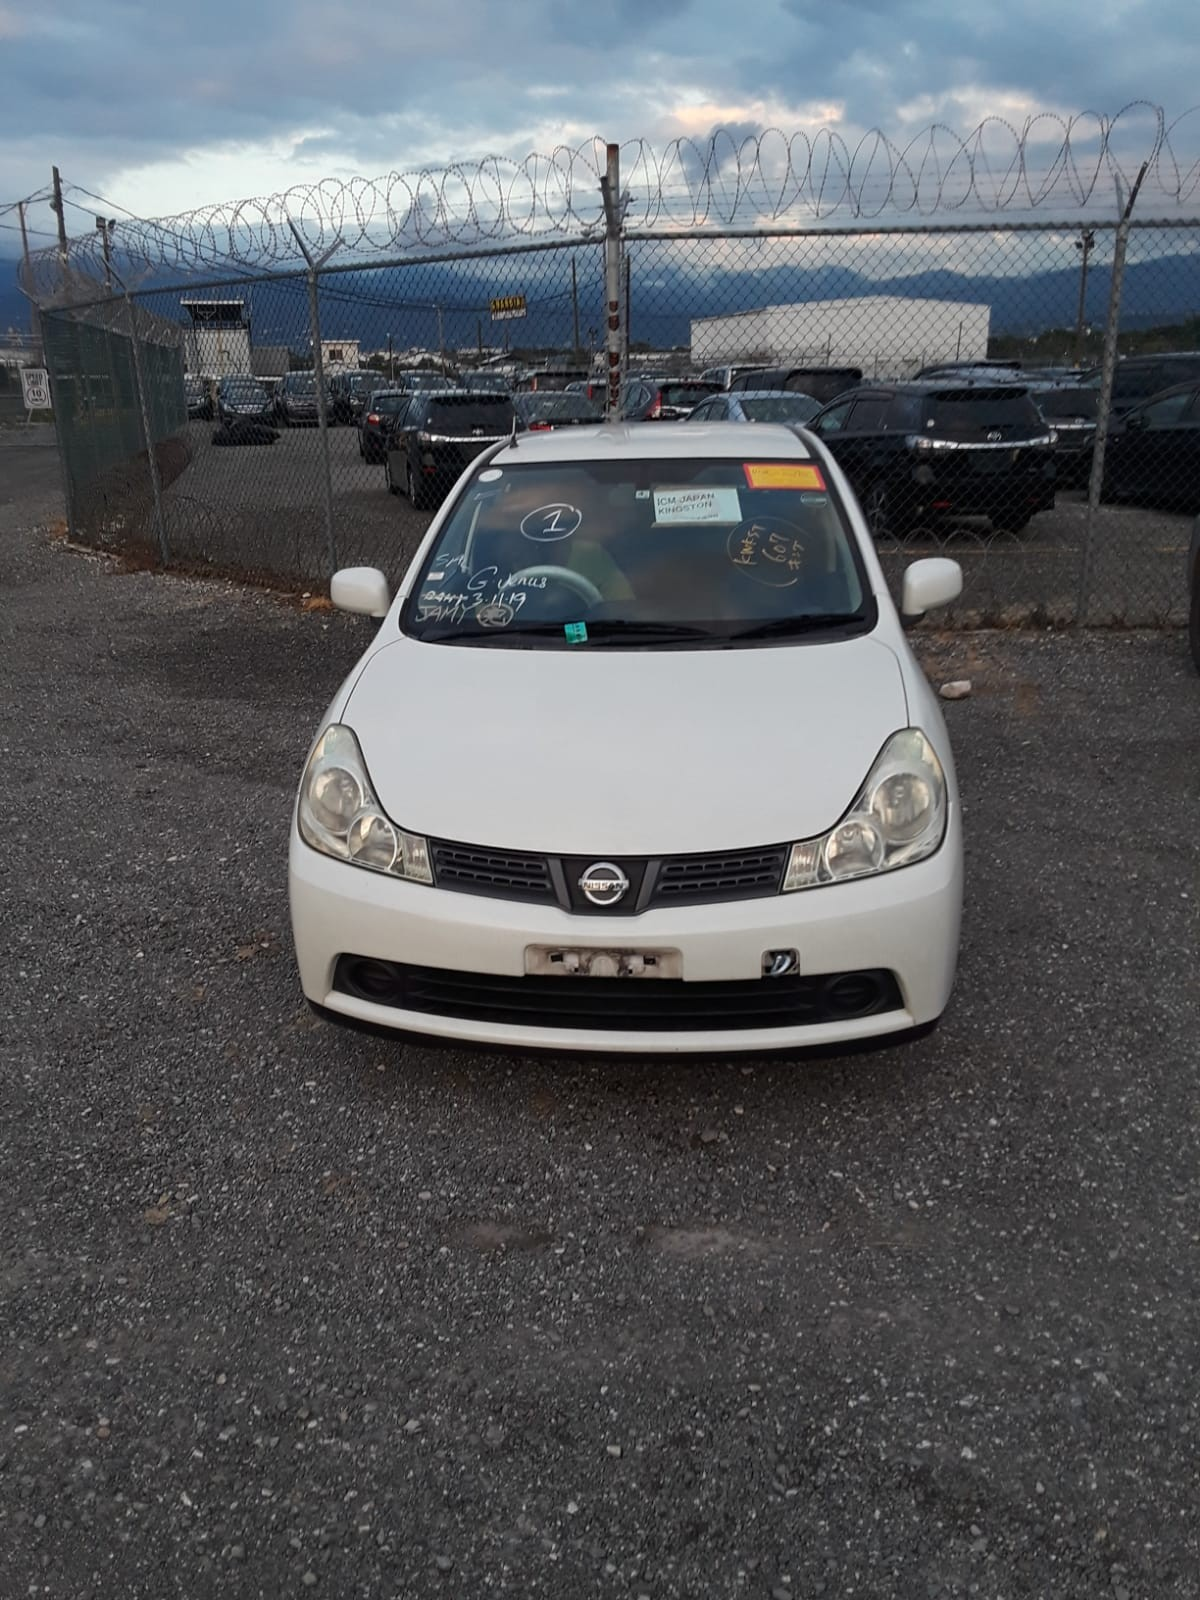 2010 nissan wingroad for sale newly imported in constant